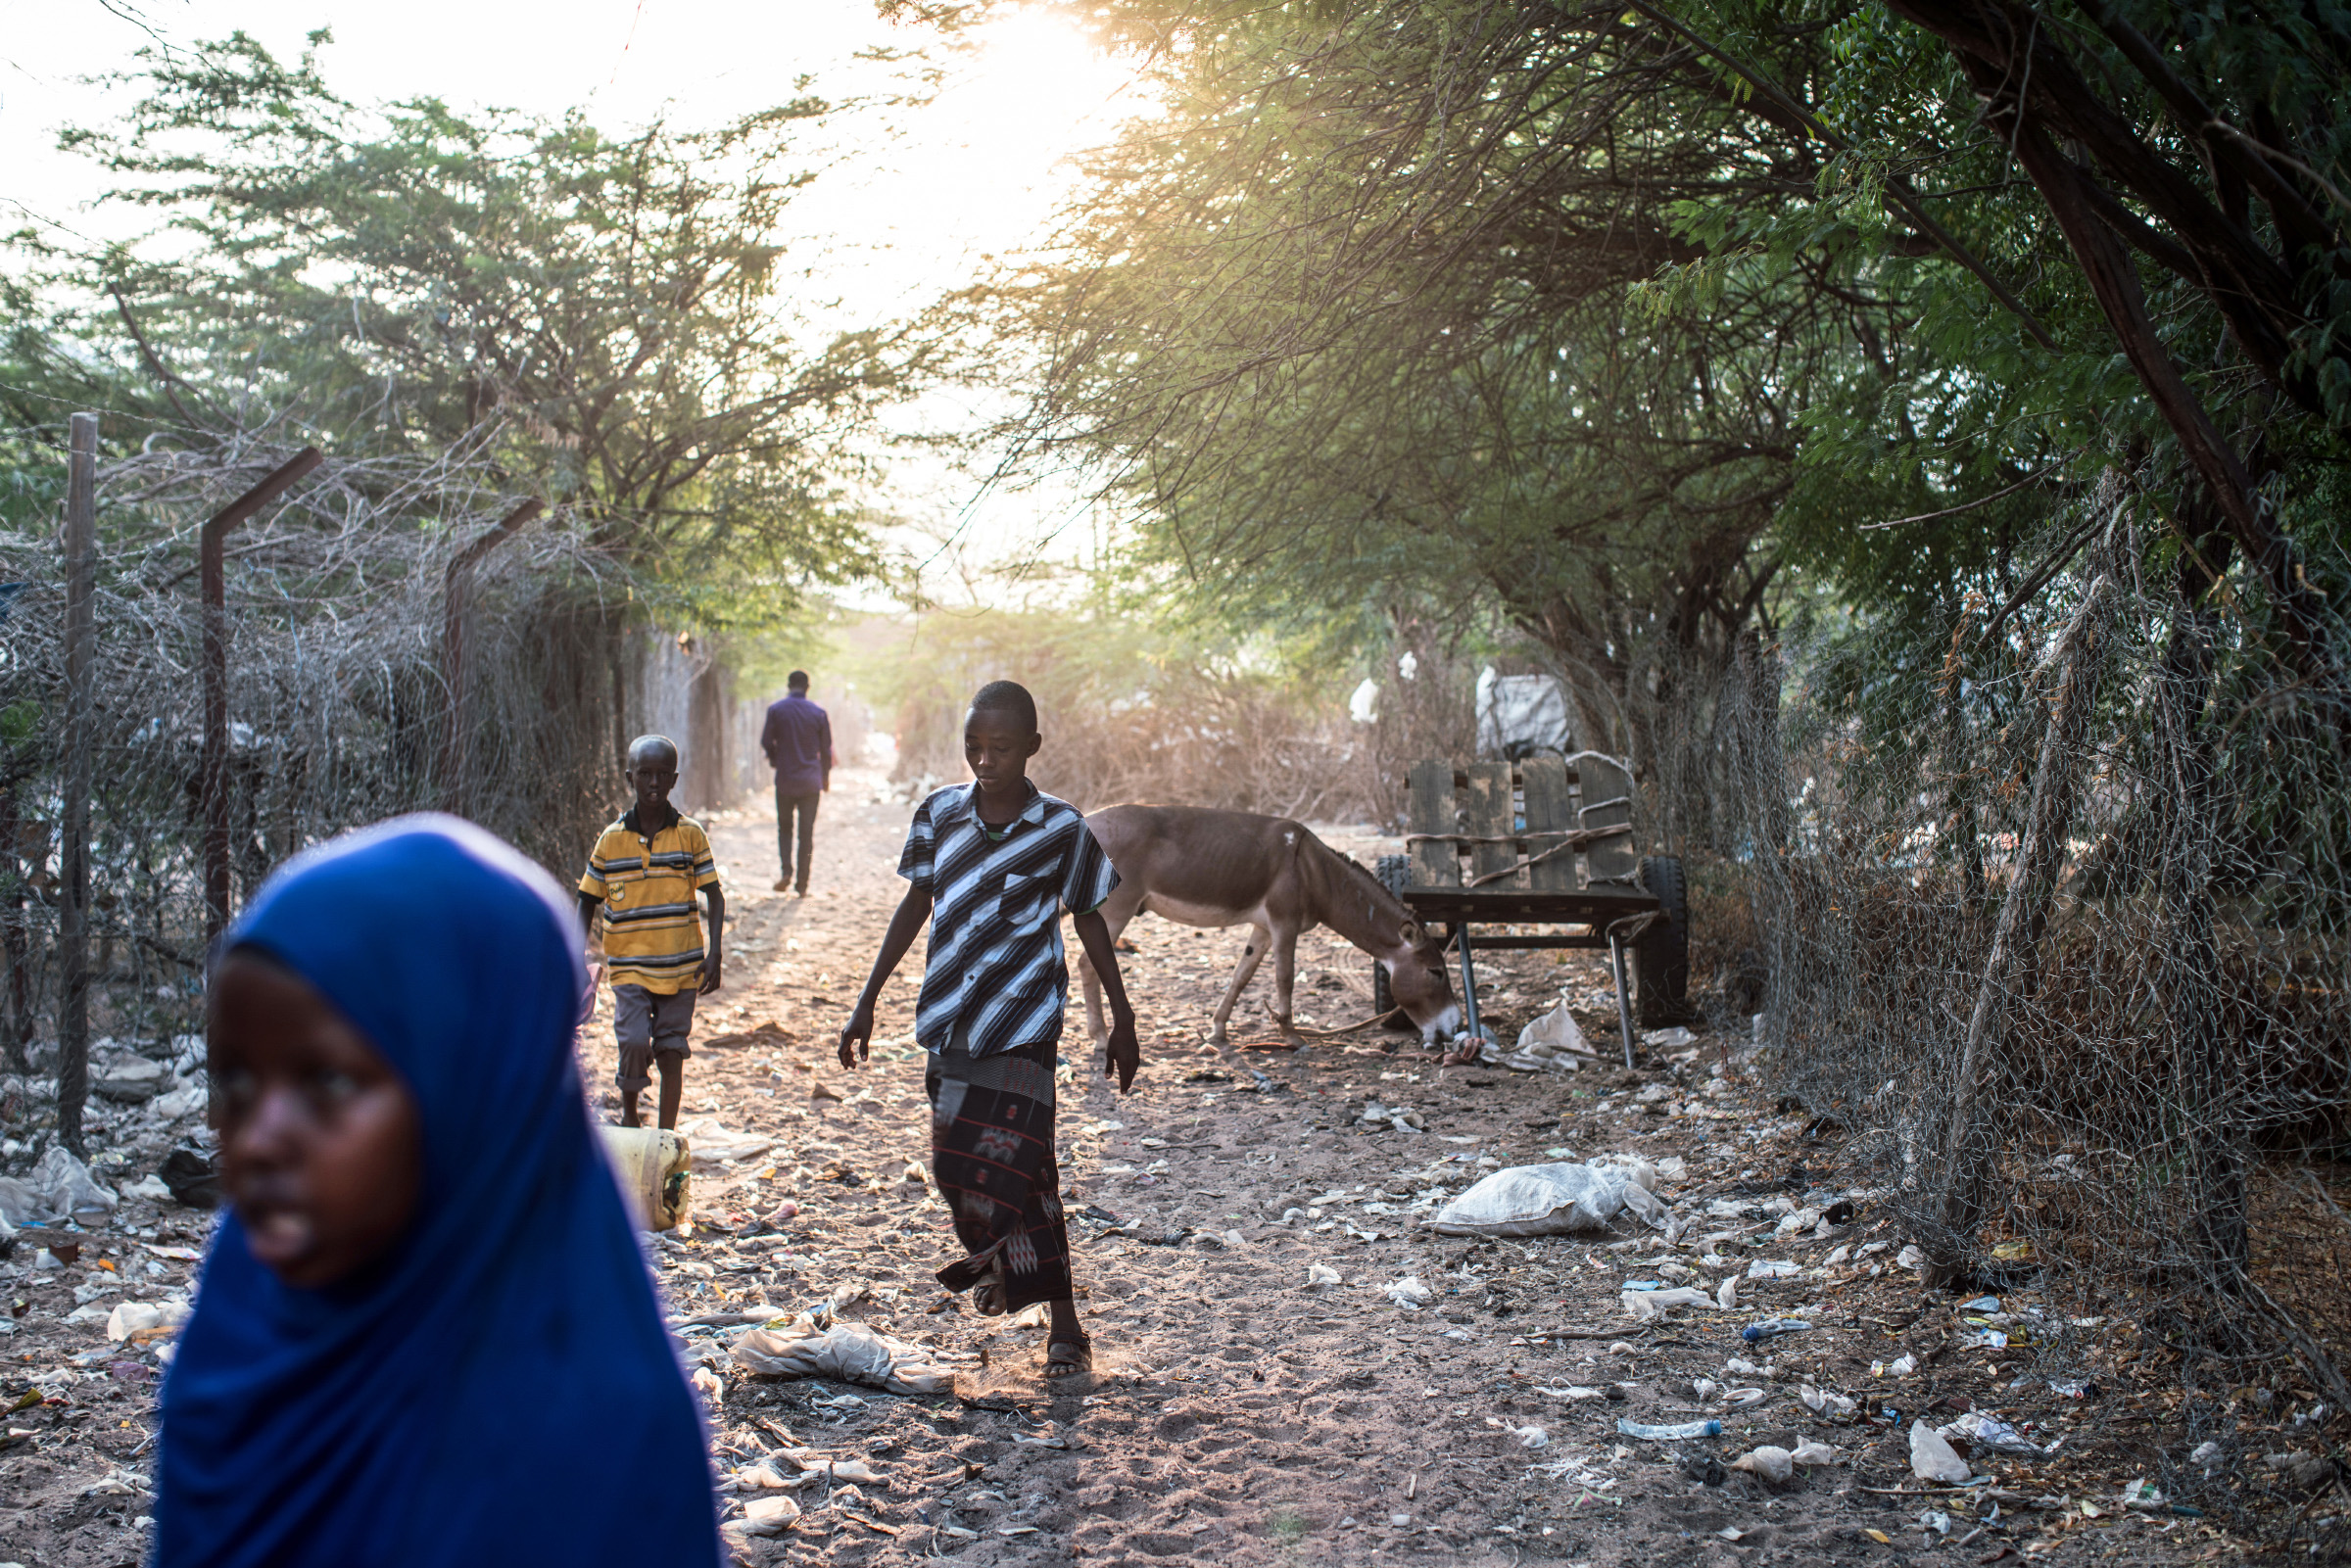 A severe drought in 2011 displaced tens of thousands of Somalis, swelling the population of Dadaab to more than 350,000 and making it one of the largest refugee camps in the world. (Photo by Nichole Sobecki/GroundTruth)